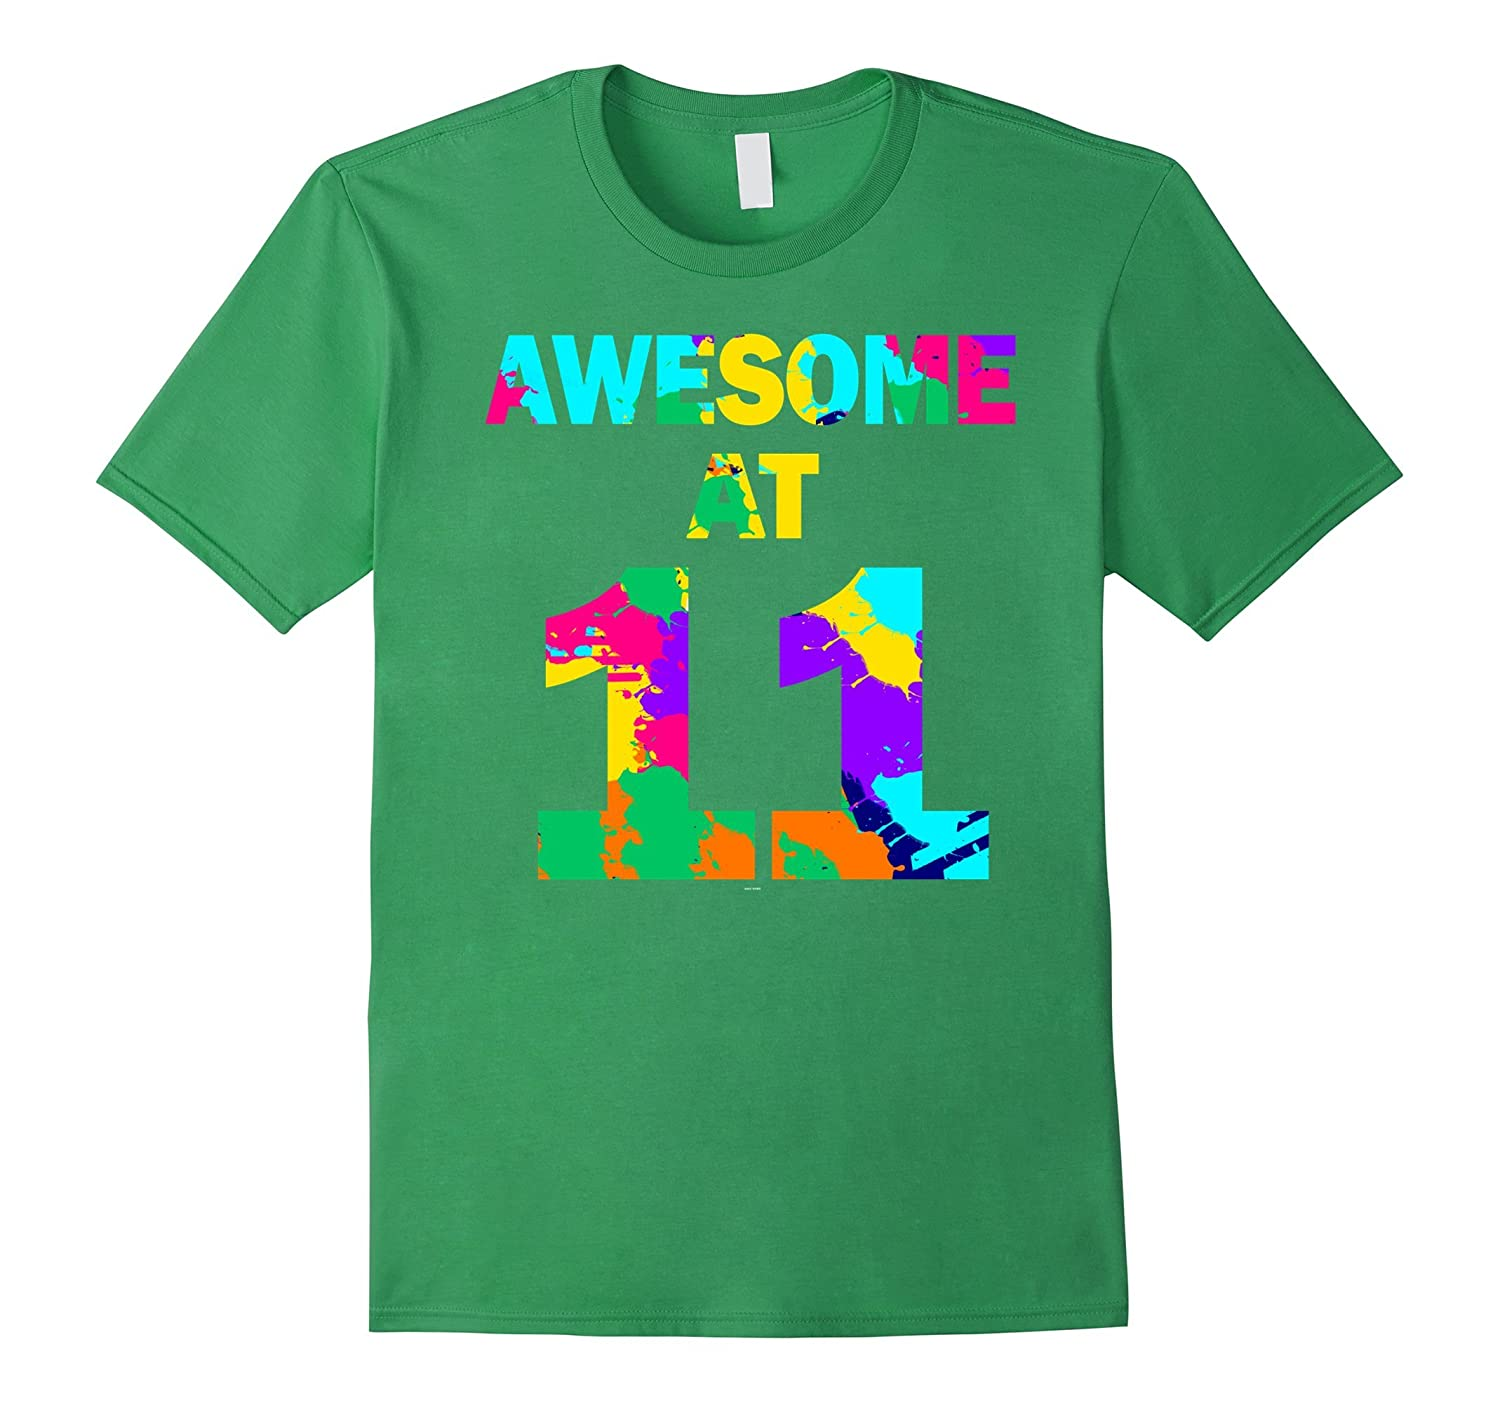 11th birthday gift shirt for 11 year old girl boy awesome at